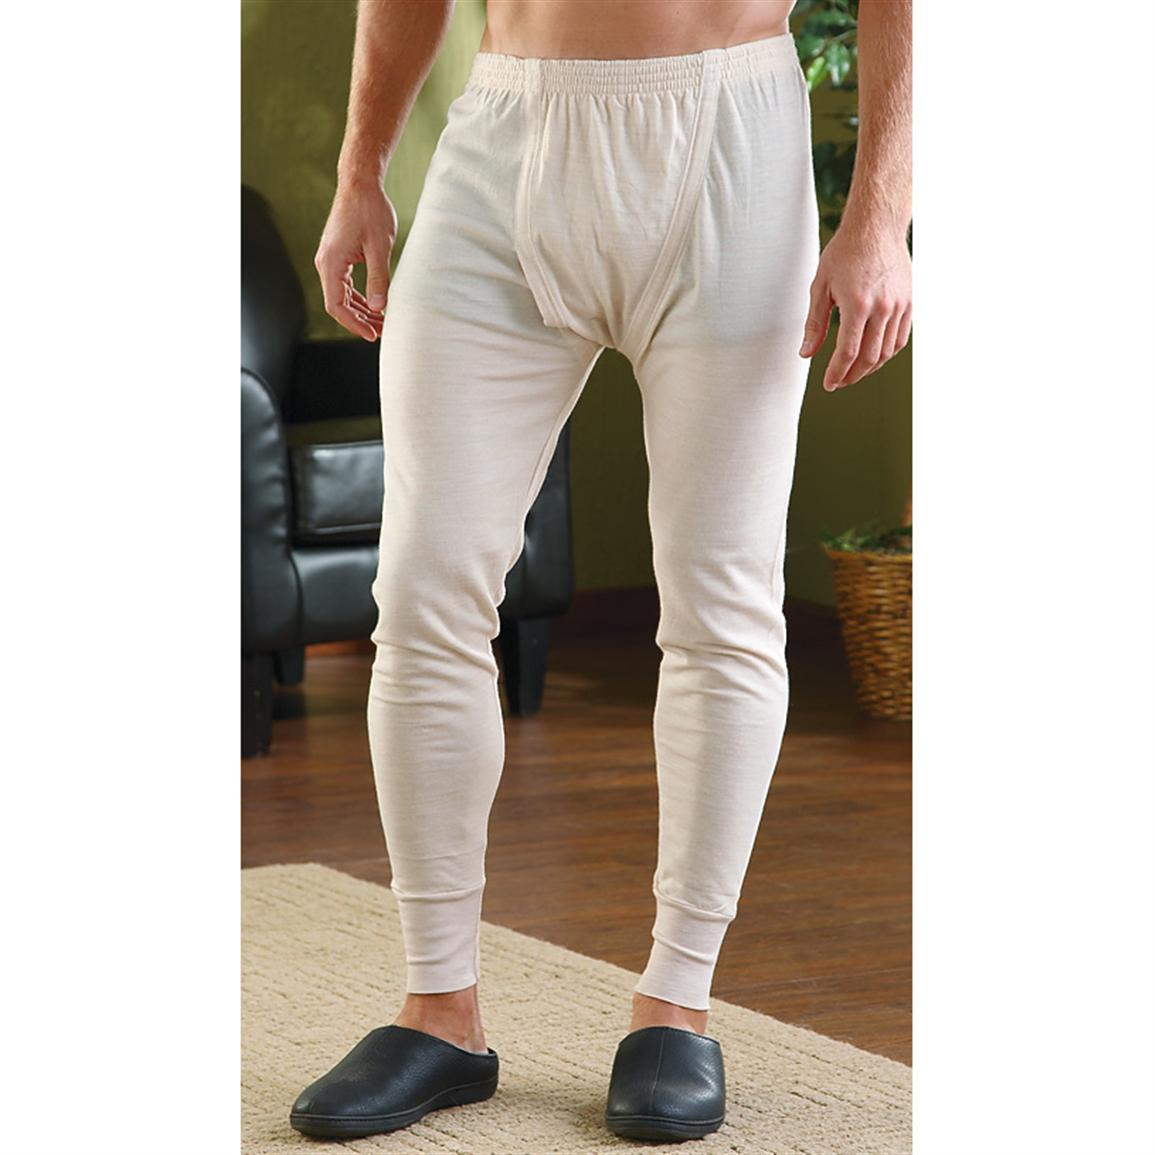 4 New Italian Military Surplus Long Johns, Off-white - 210953 ...